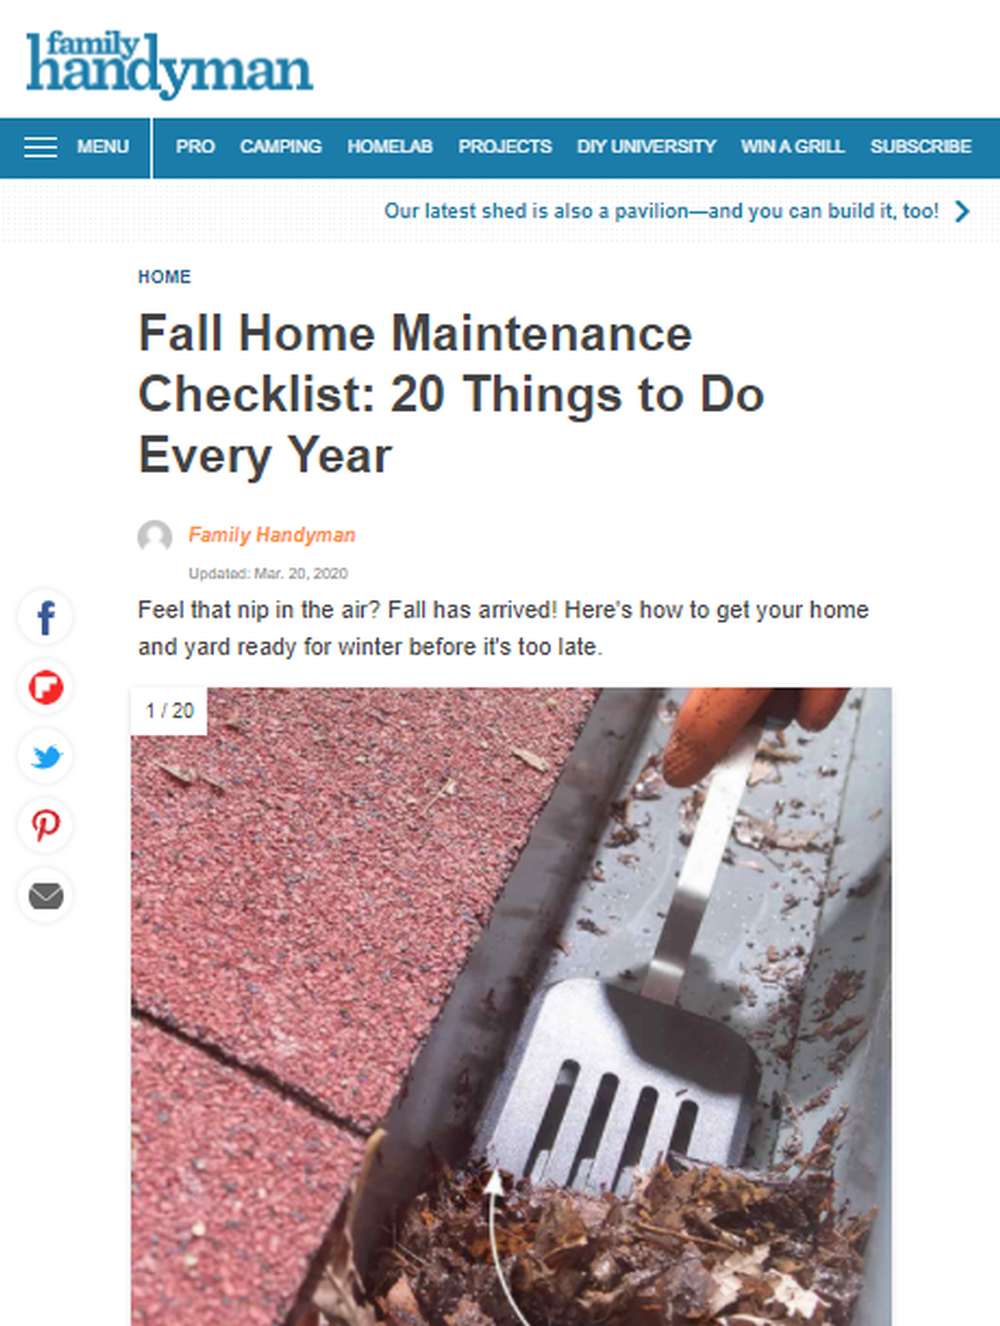 Fall-Home-Maintenance-Checklist-20-Things-to-Do-Every-Year.png